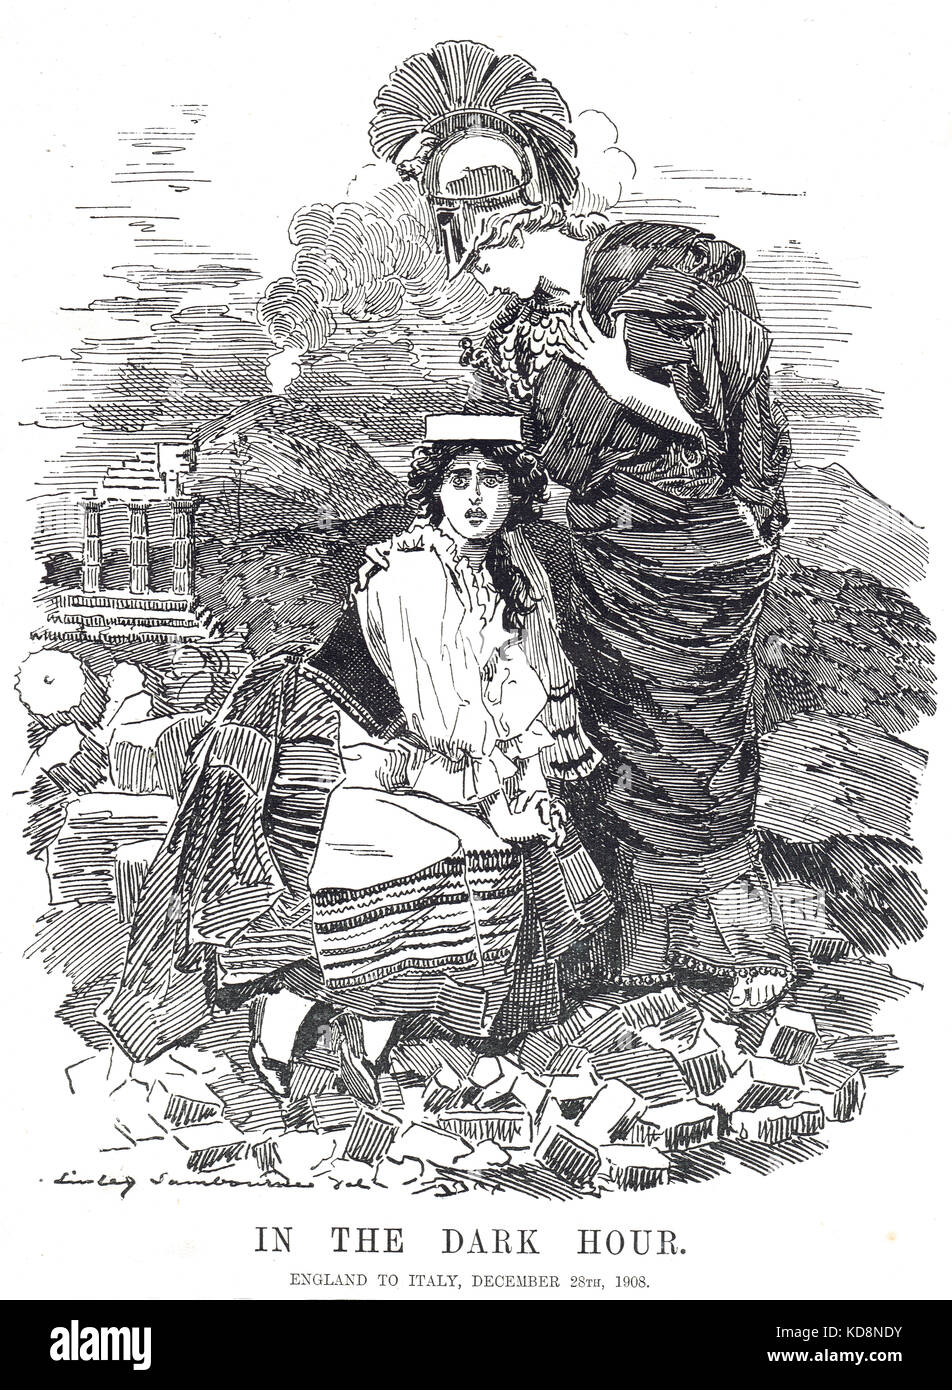 The Messina earthquake, 28 December 1908.  England offering Italy help. Punch Cartoon of 6 January 1909 - Stock Image